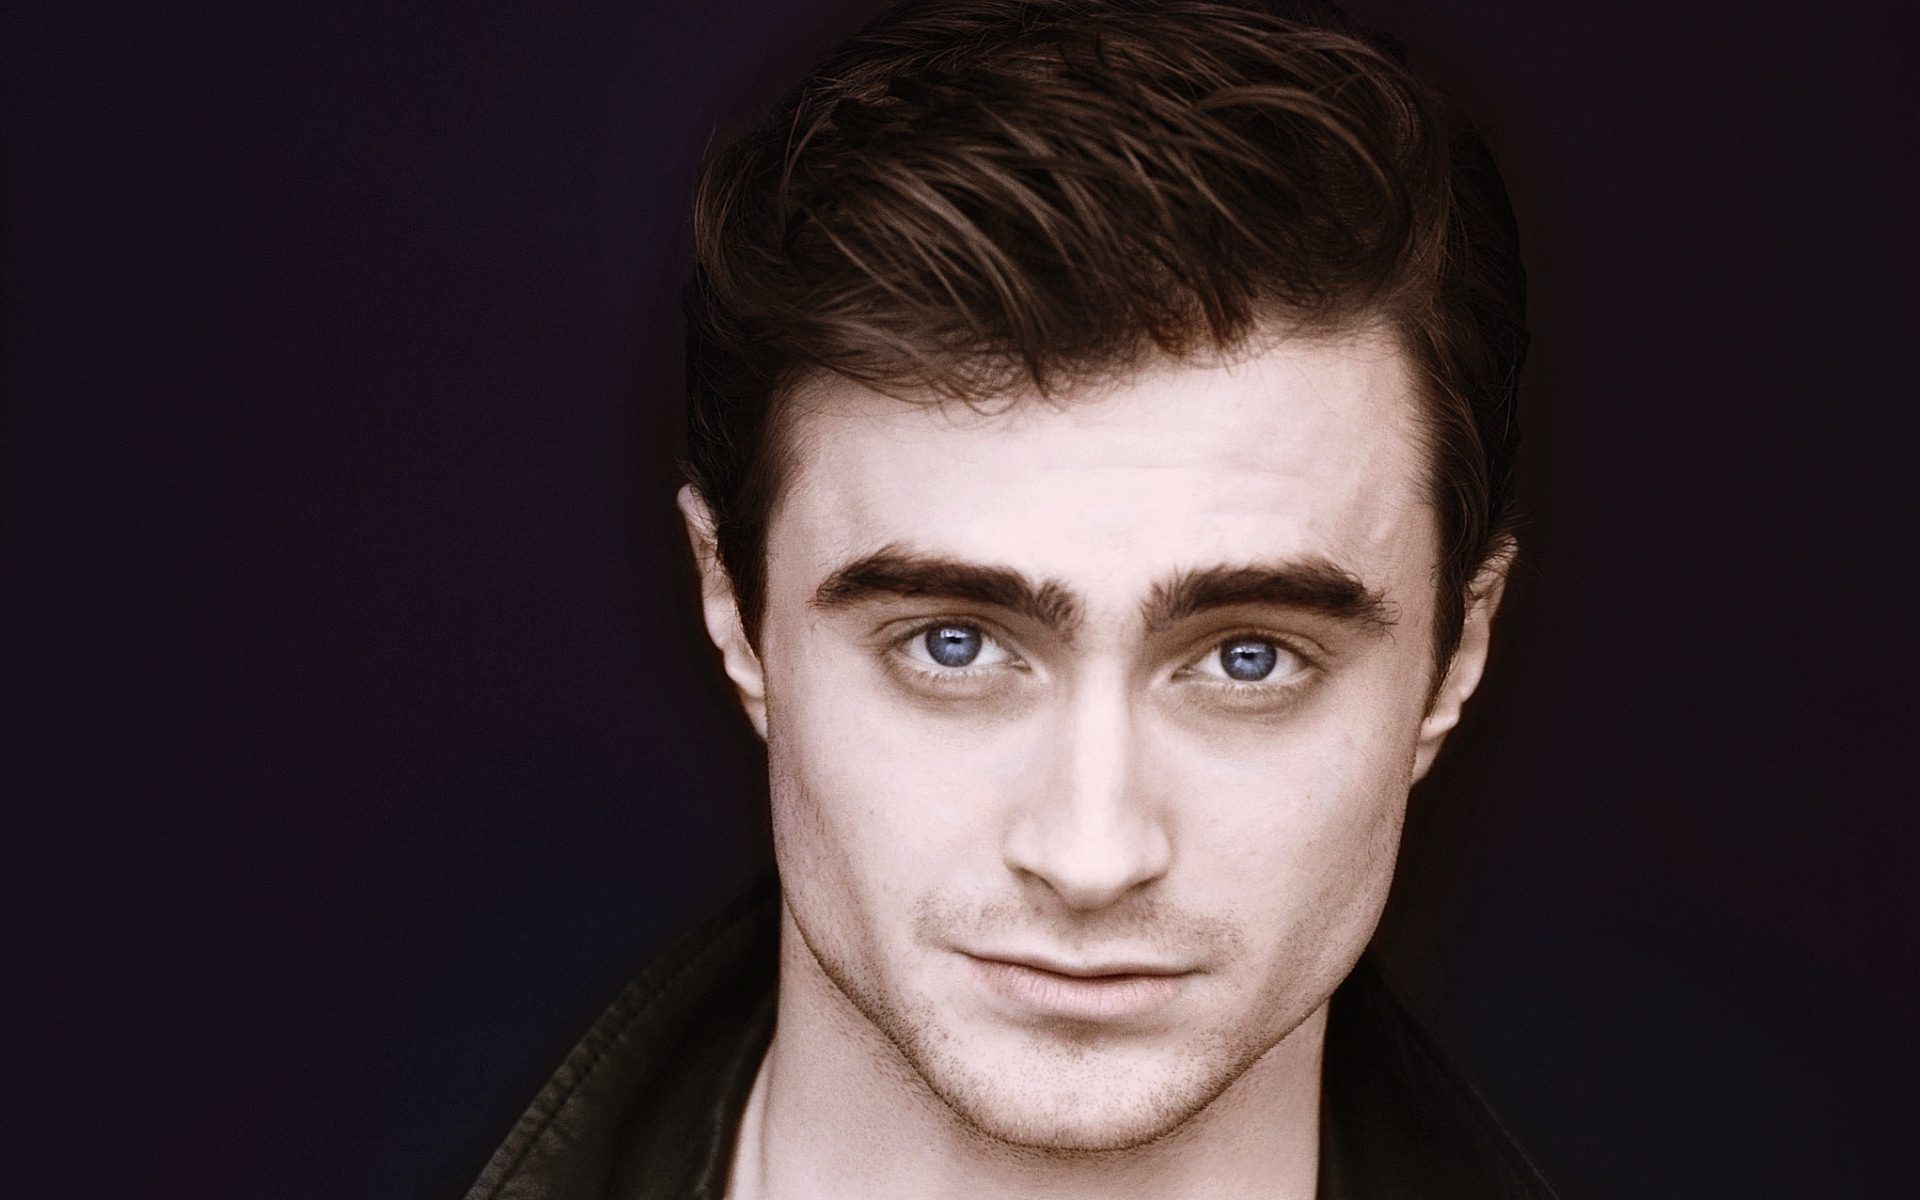 Free Download Pure 100% Daniel Radcliff HD Wallpapers